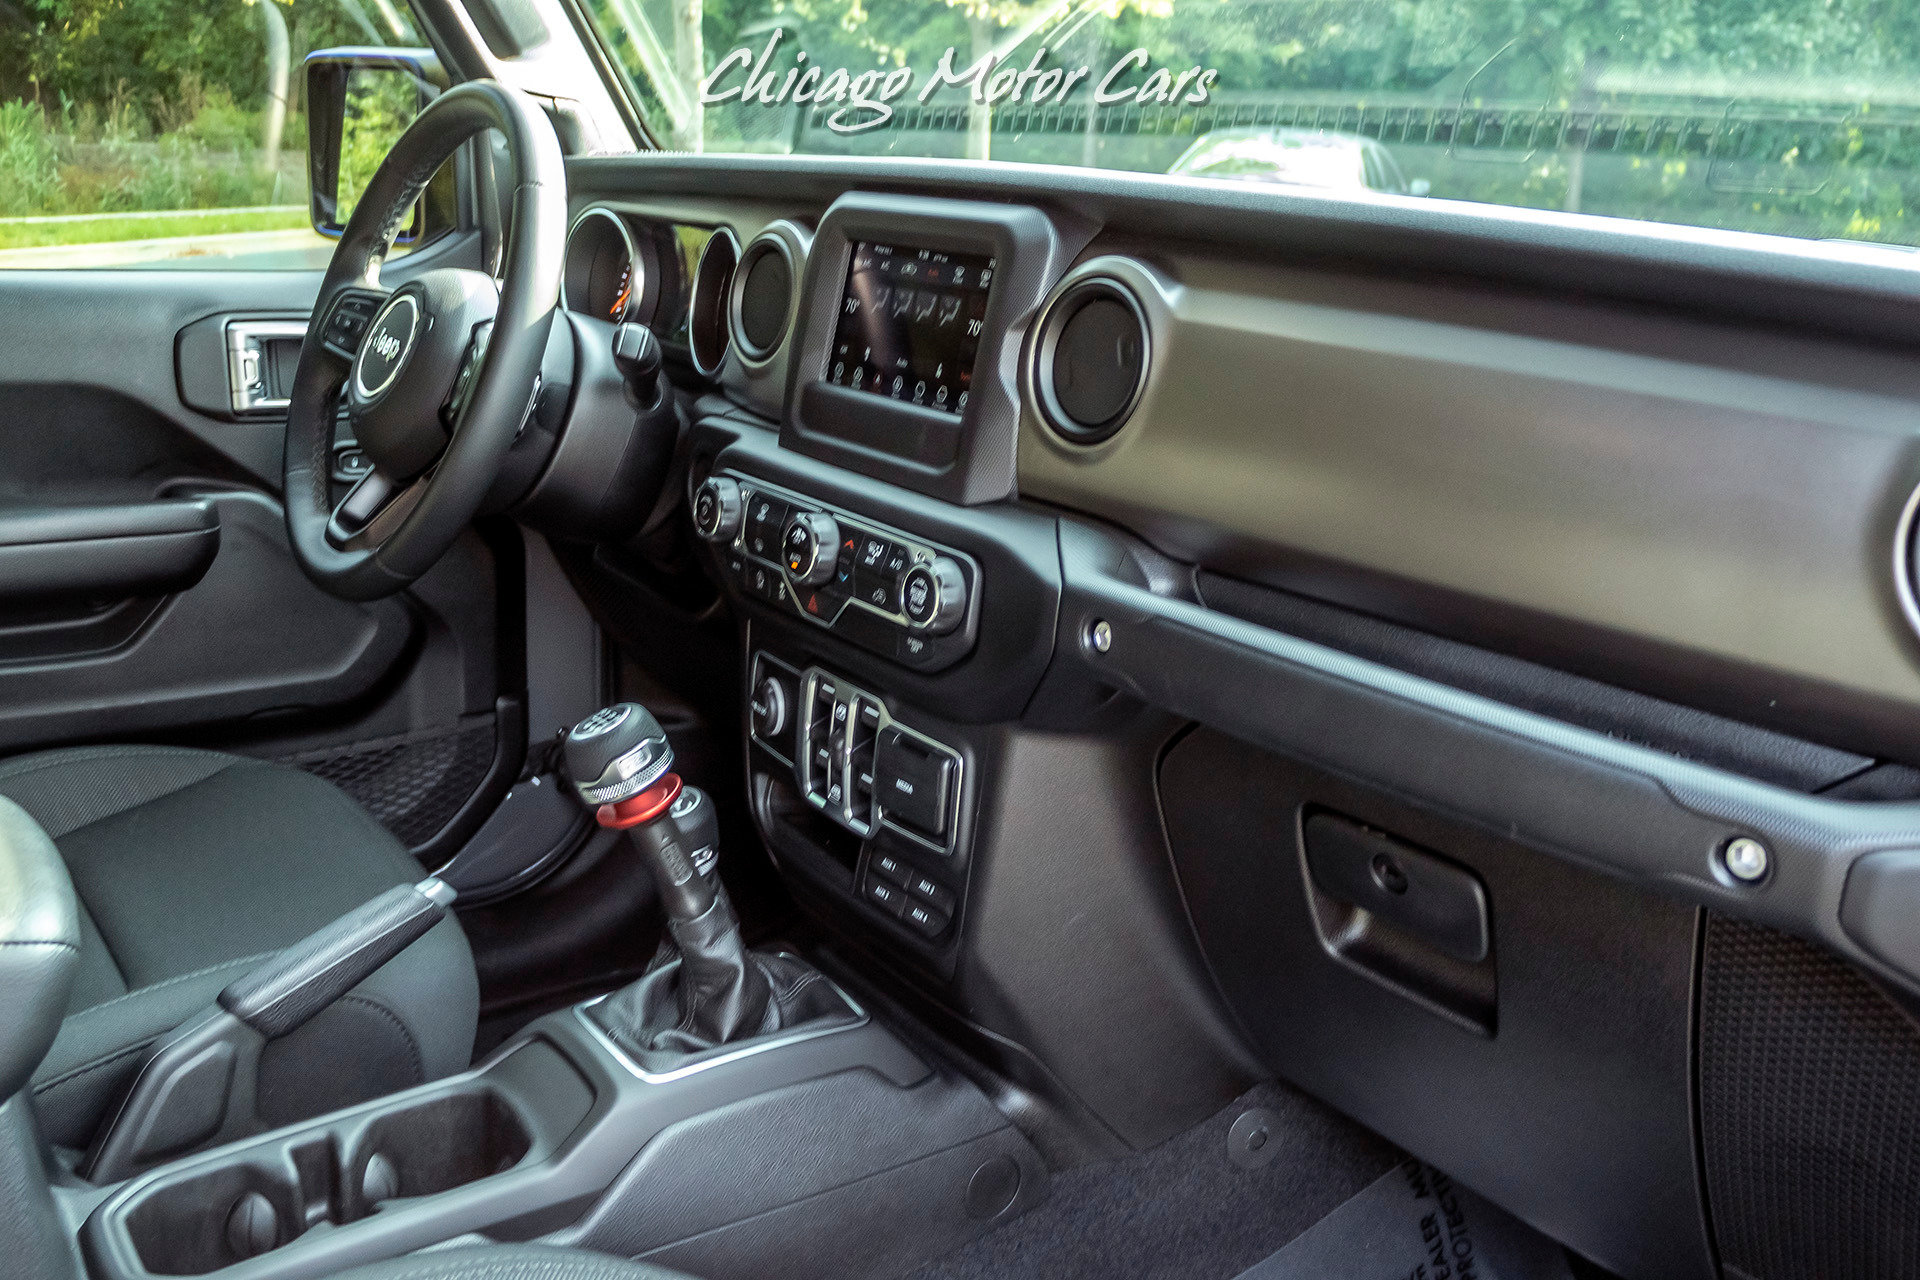 Used-2020-Jeep-Gladiator-Sport-S-Crew-Cab-Only-5k-Miles-MANUAL-Transmission